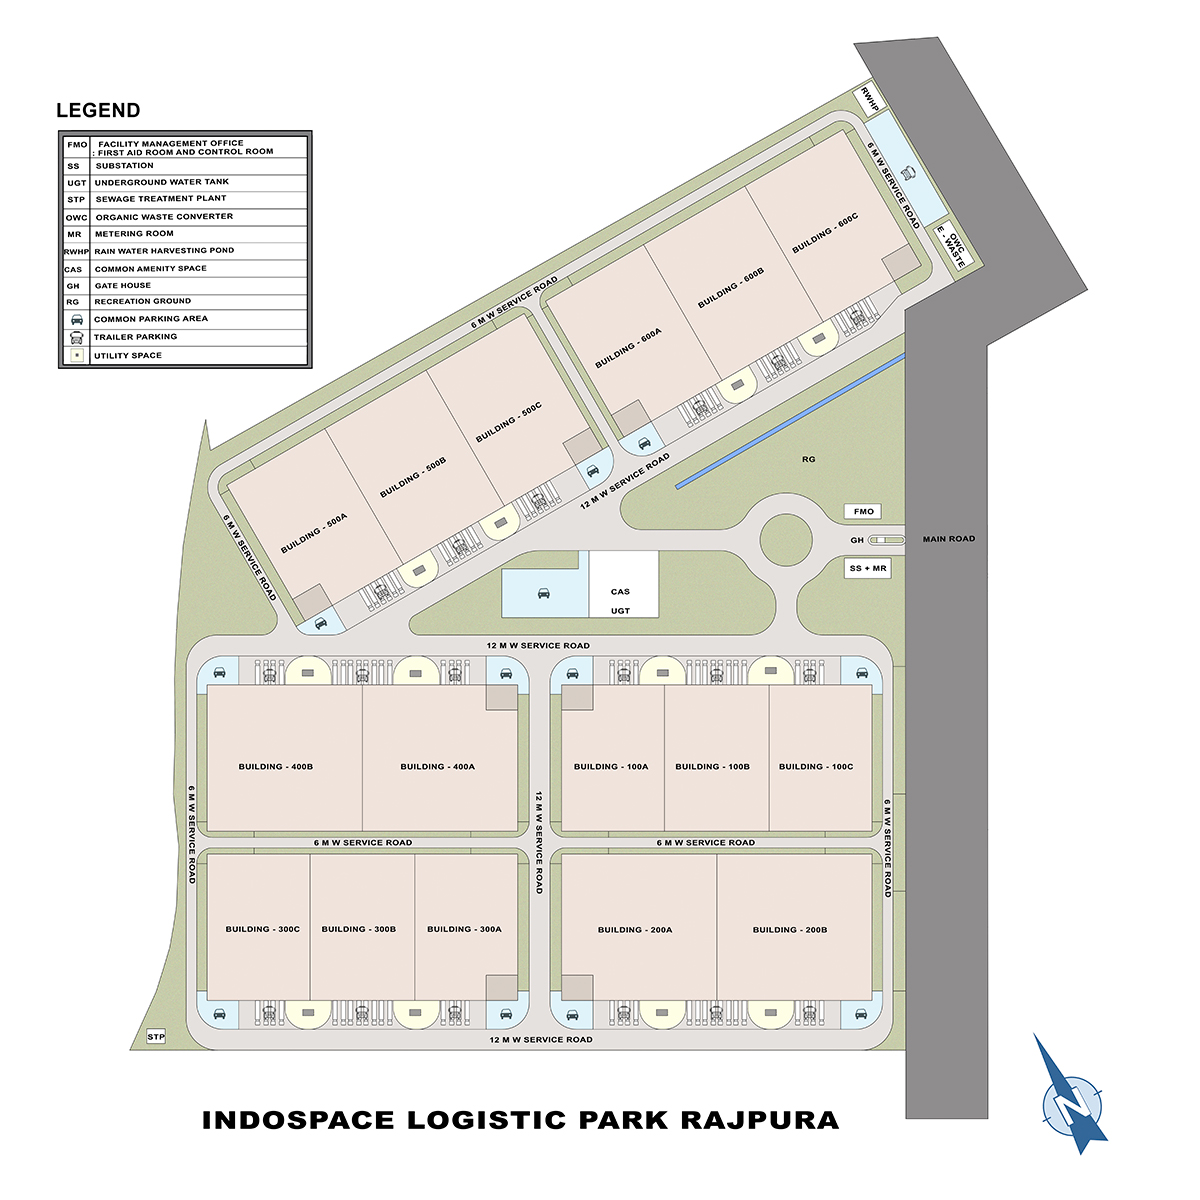 IndoSpace Logistics Park Rajpura